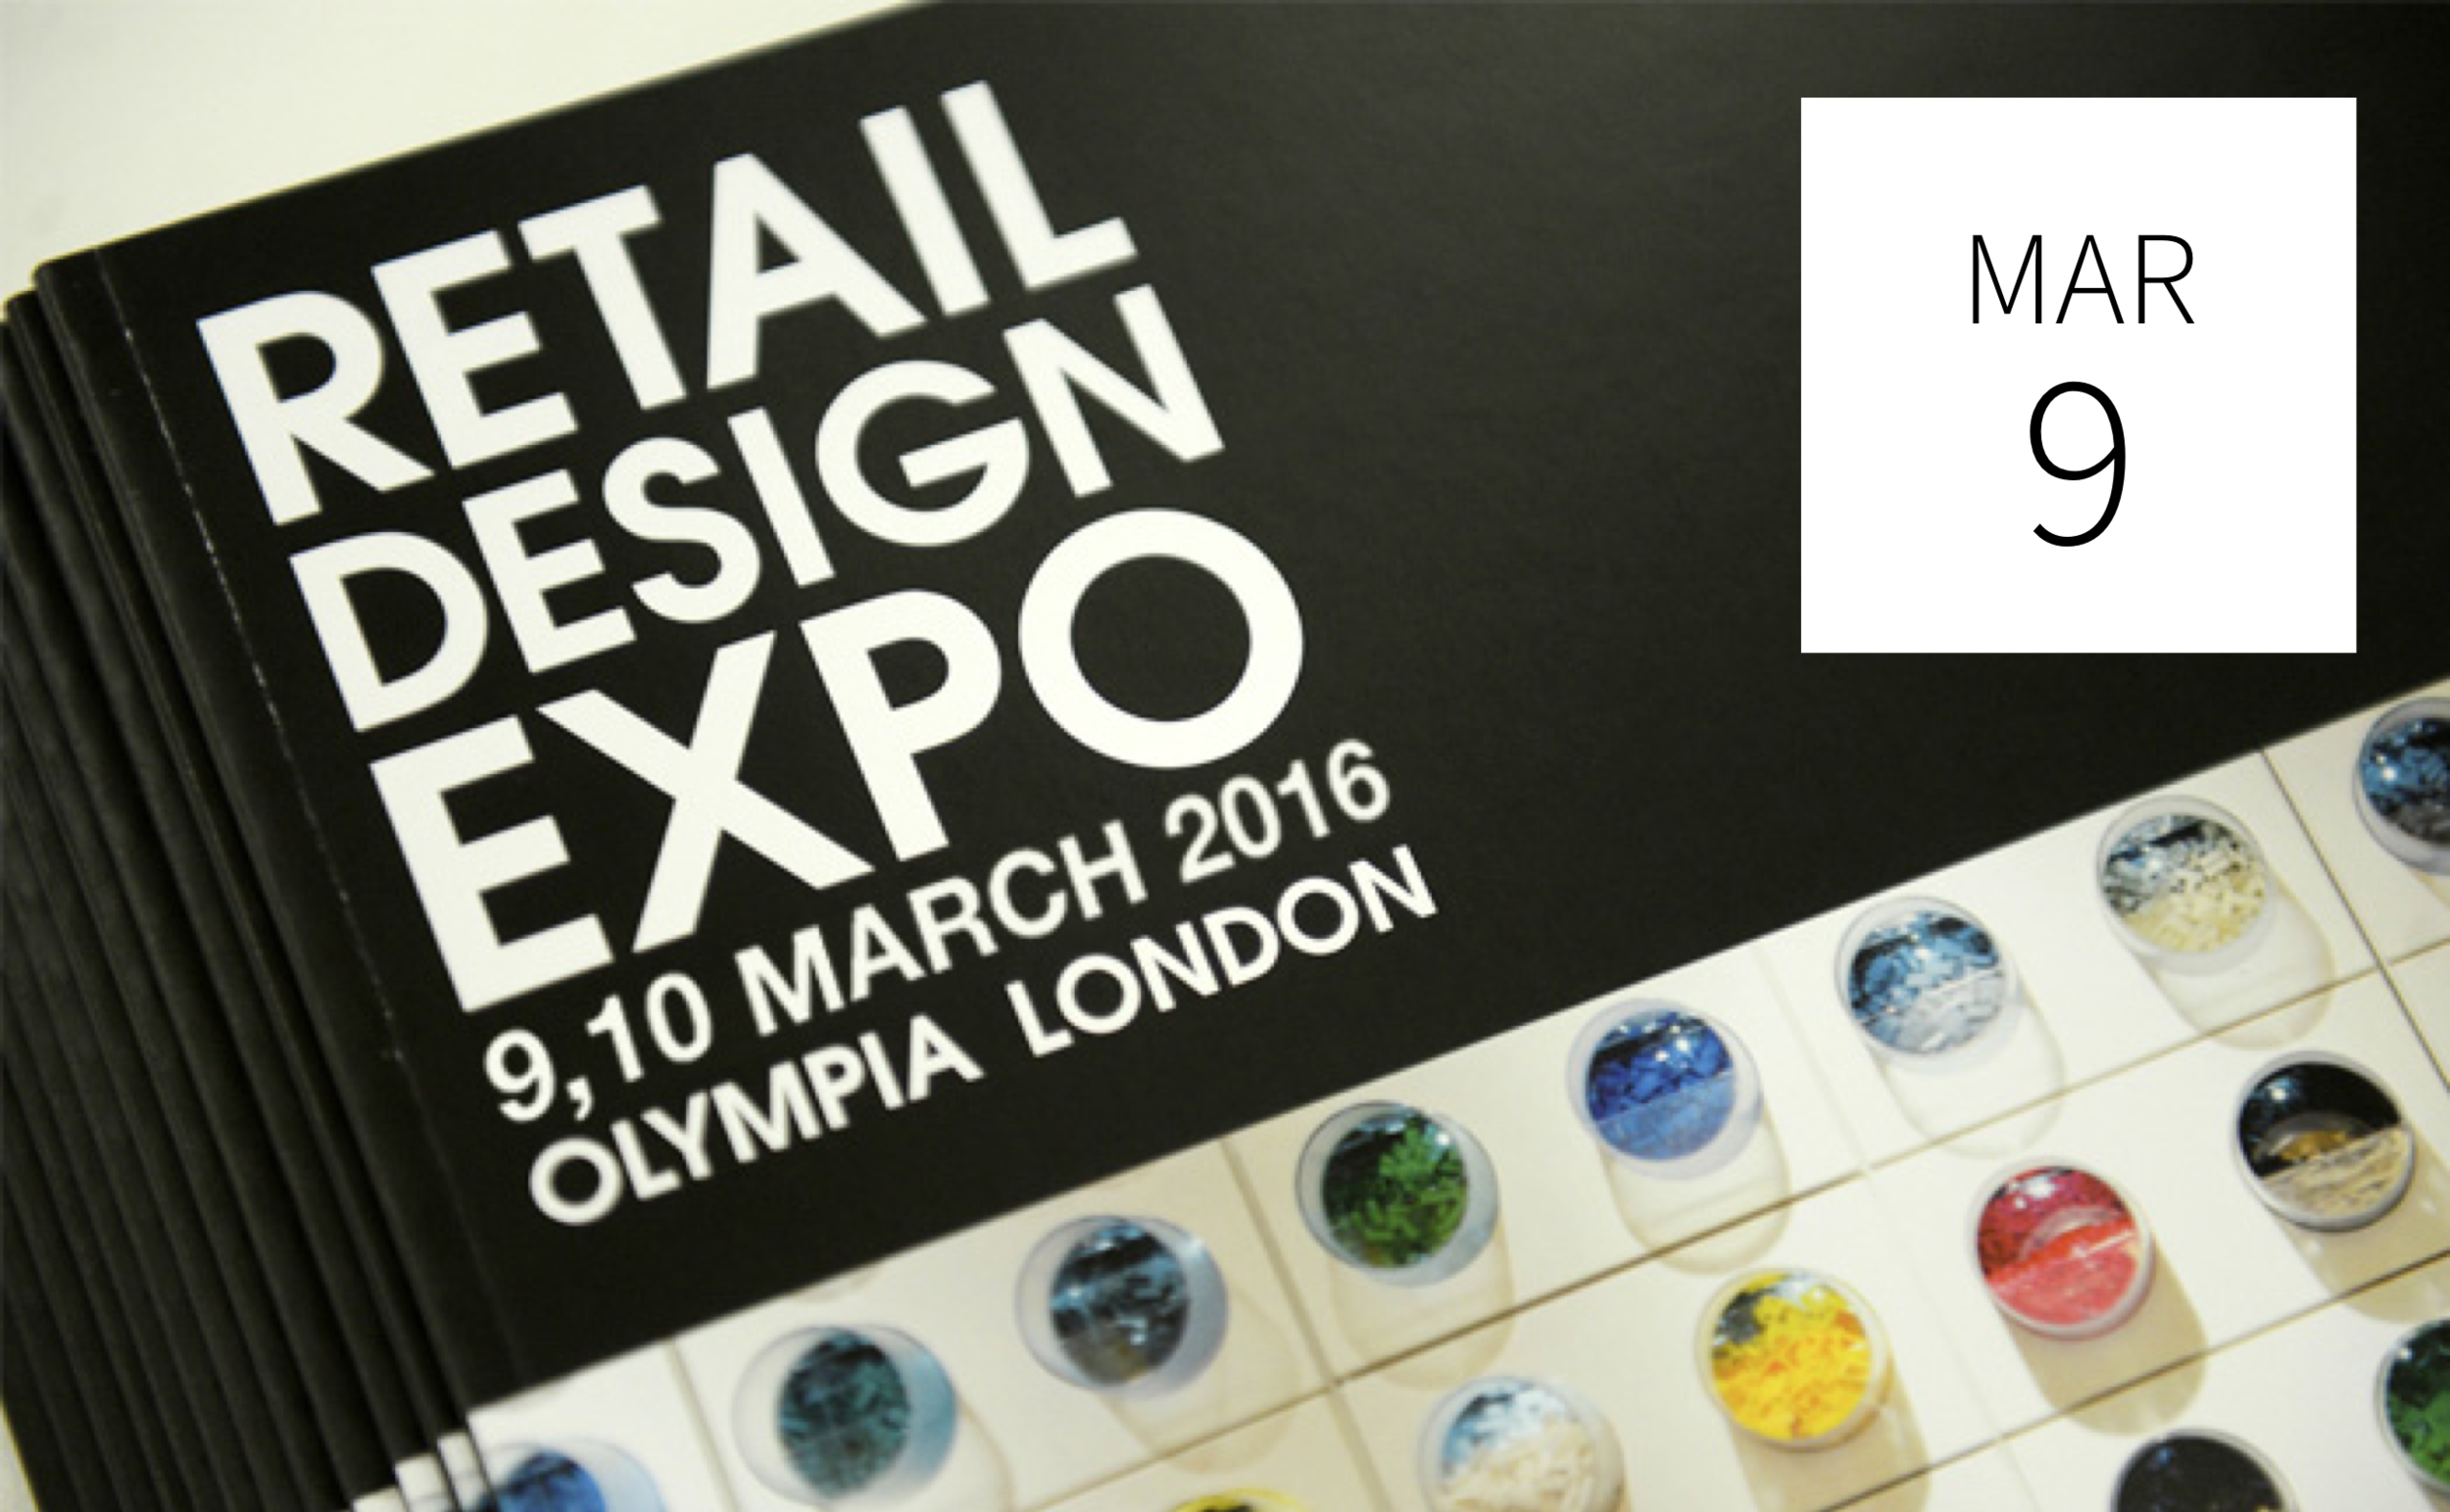 RETAIL DESIGN EXPO.png